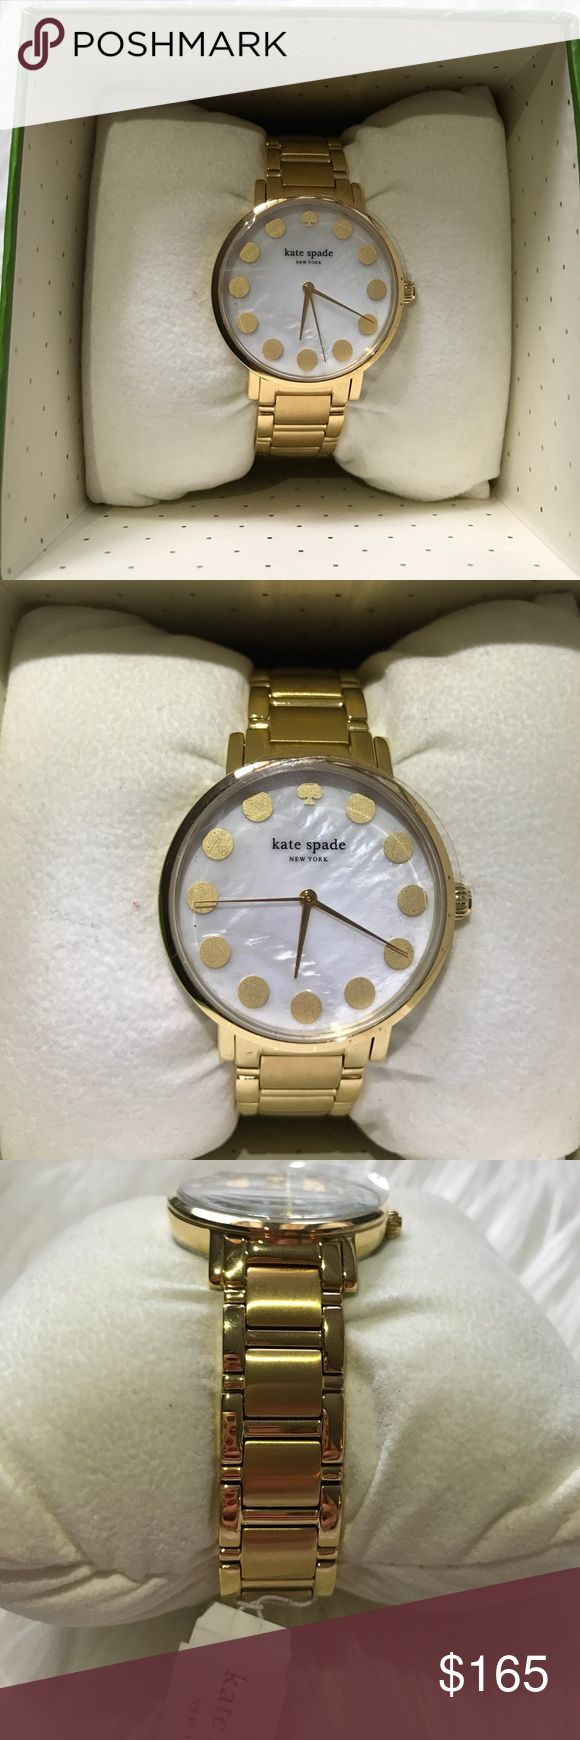 Kate Spade Gramercy Watch NWT Kate Spade Gramercy watch. Water resistant. Gold tone stainless steel. Brand new and never worn! kate spade Accessories Watches